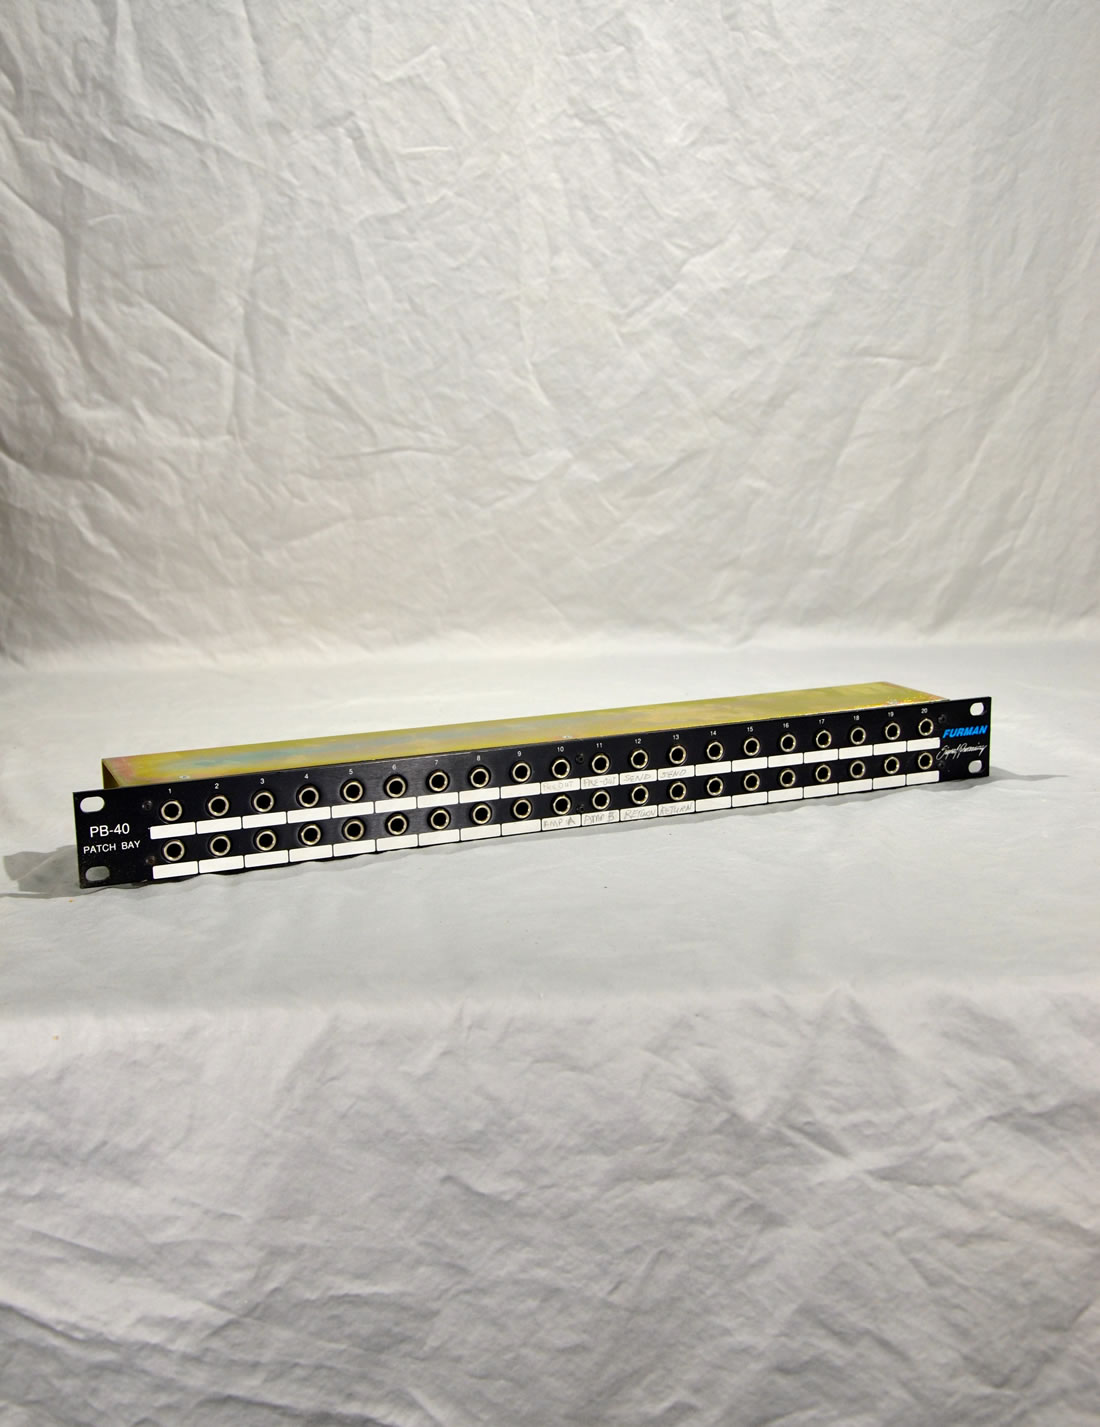 Furman PB-40 Patch Bay